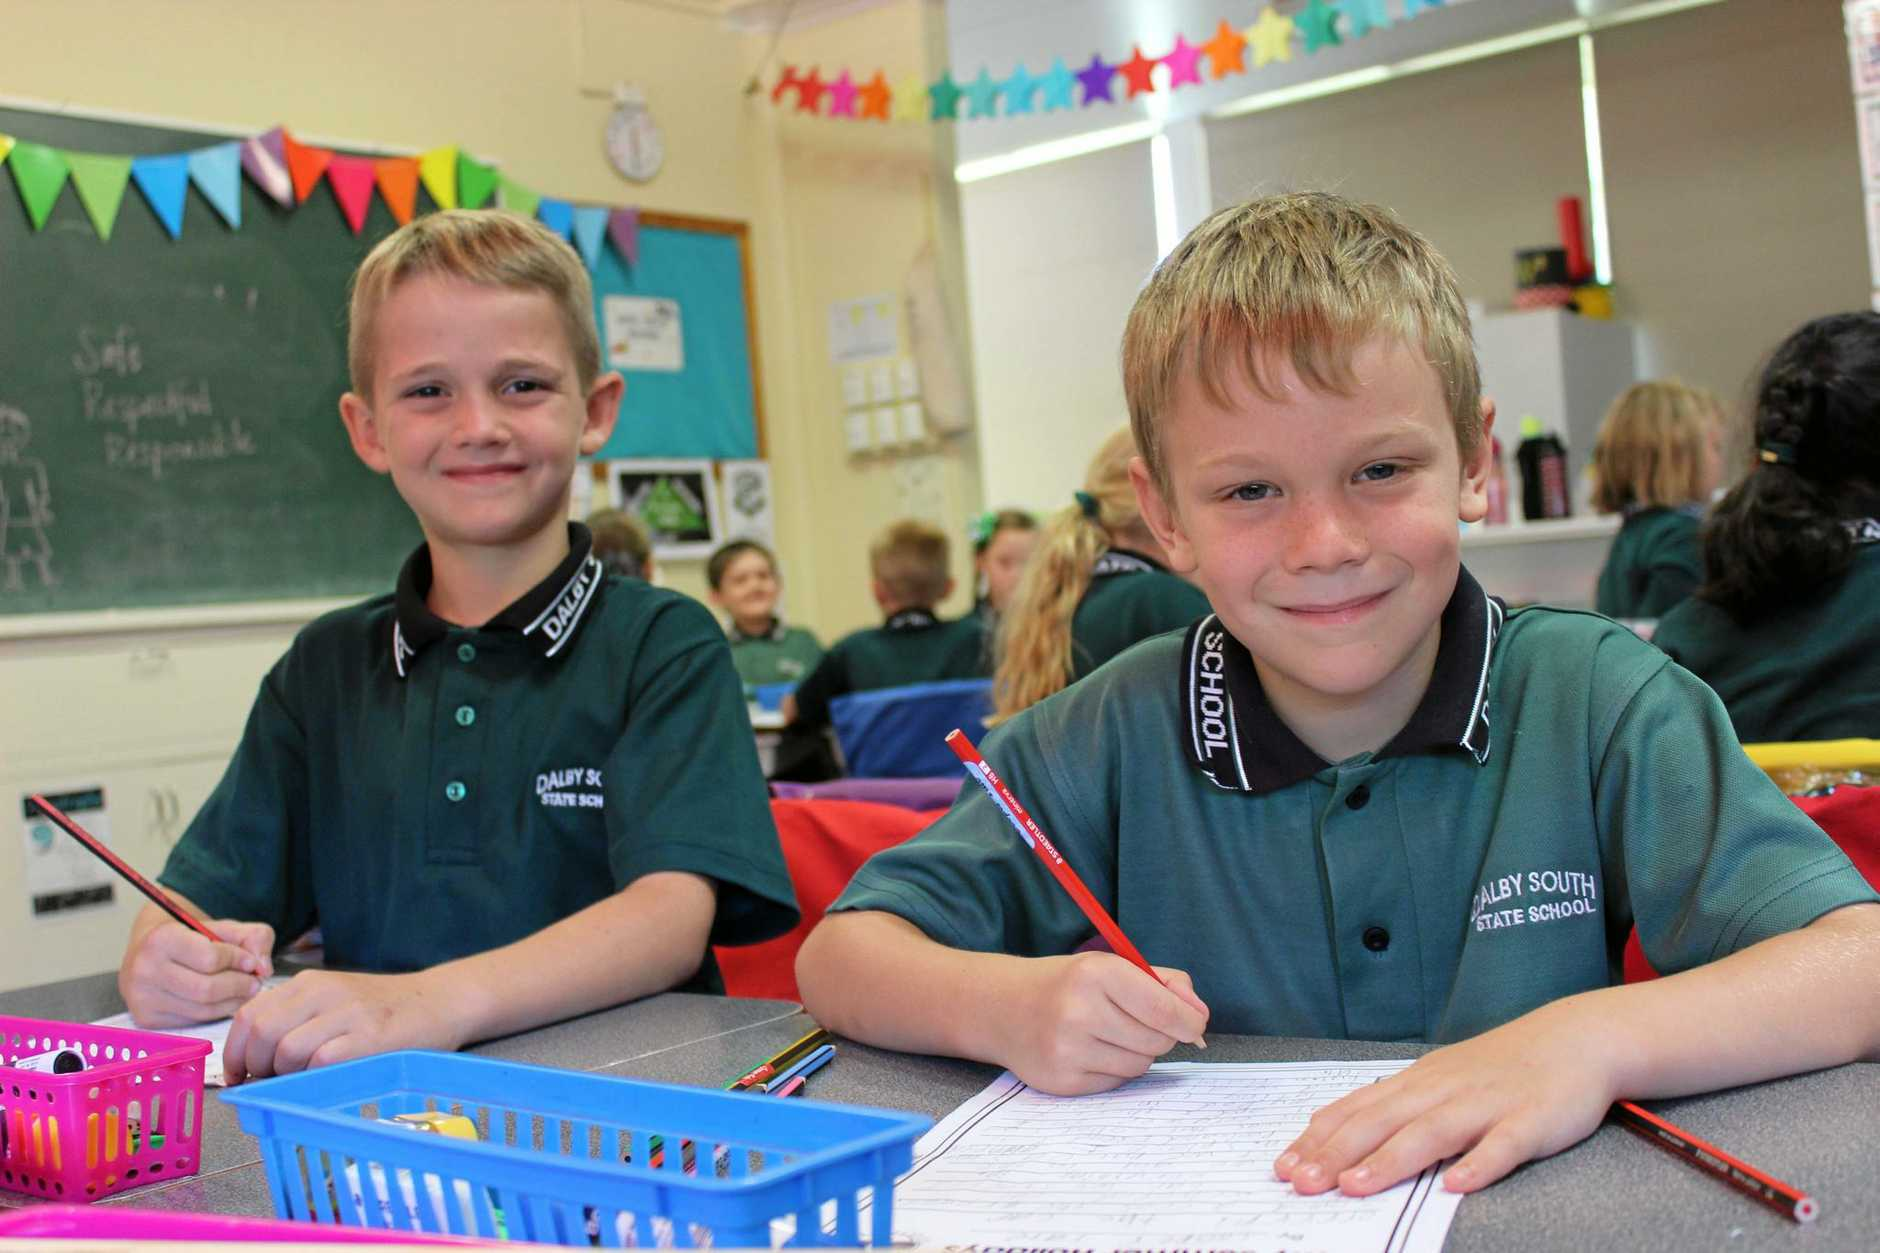 HITTING THE GROUND WRITING: Patrick Pharaoh and Cooper Tate at Dalby South State School.